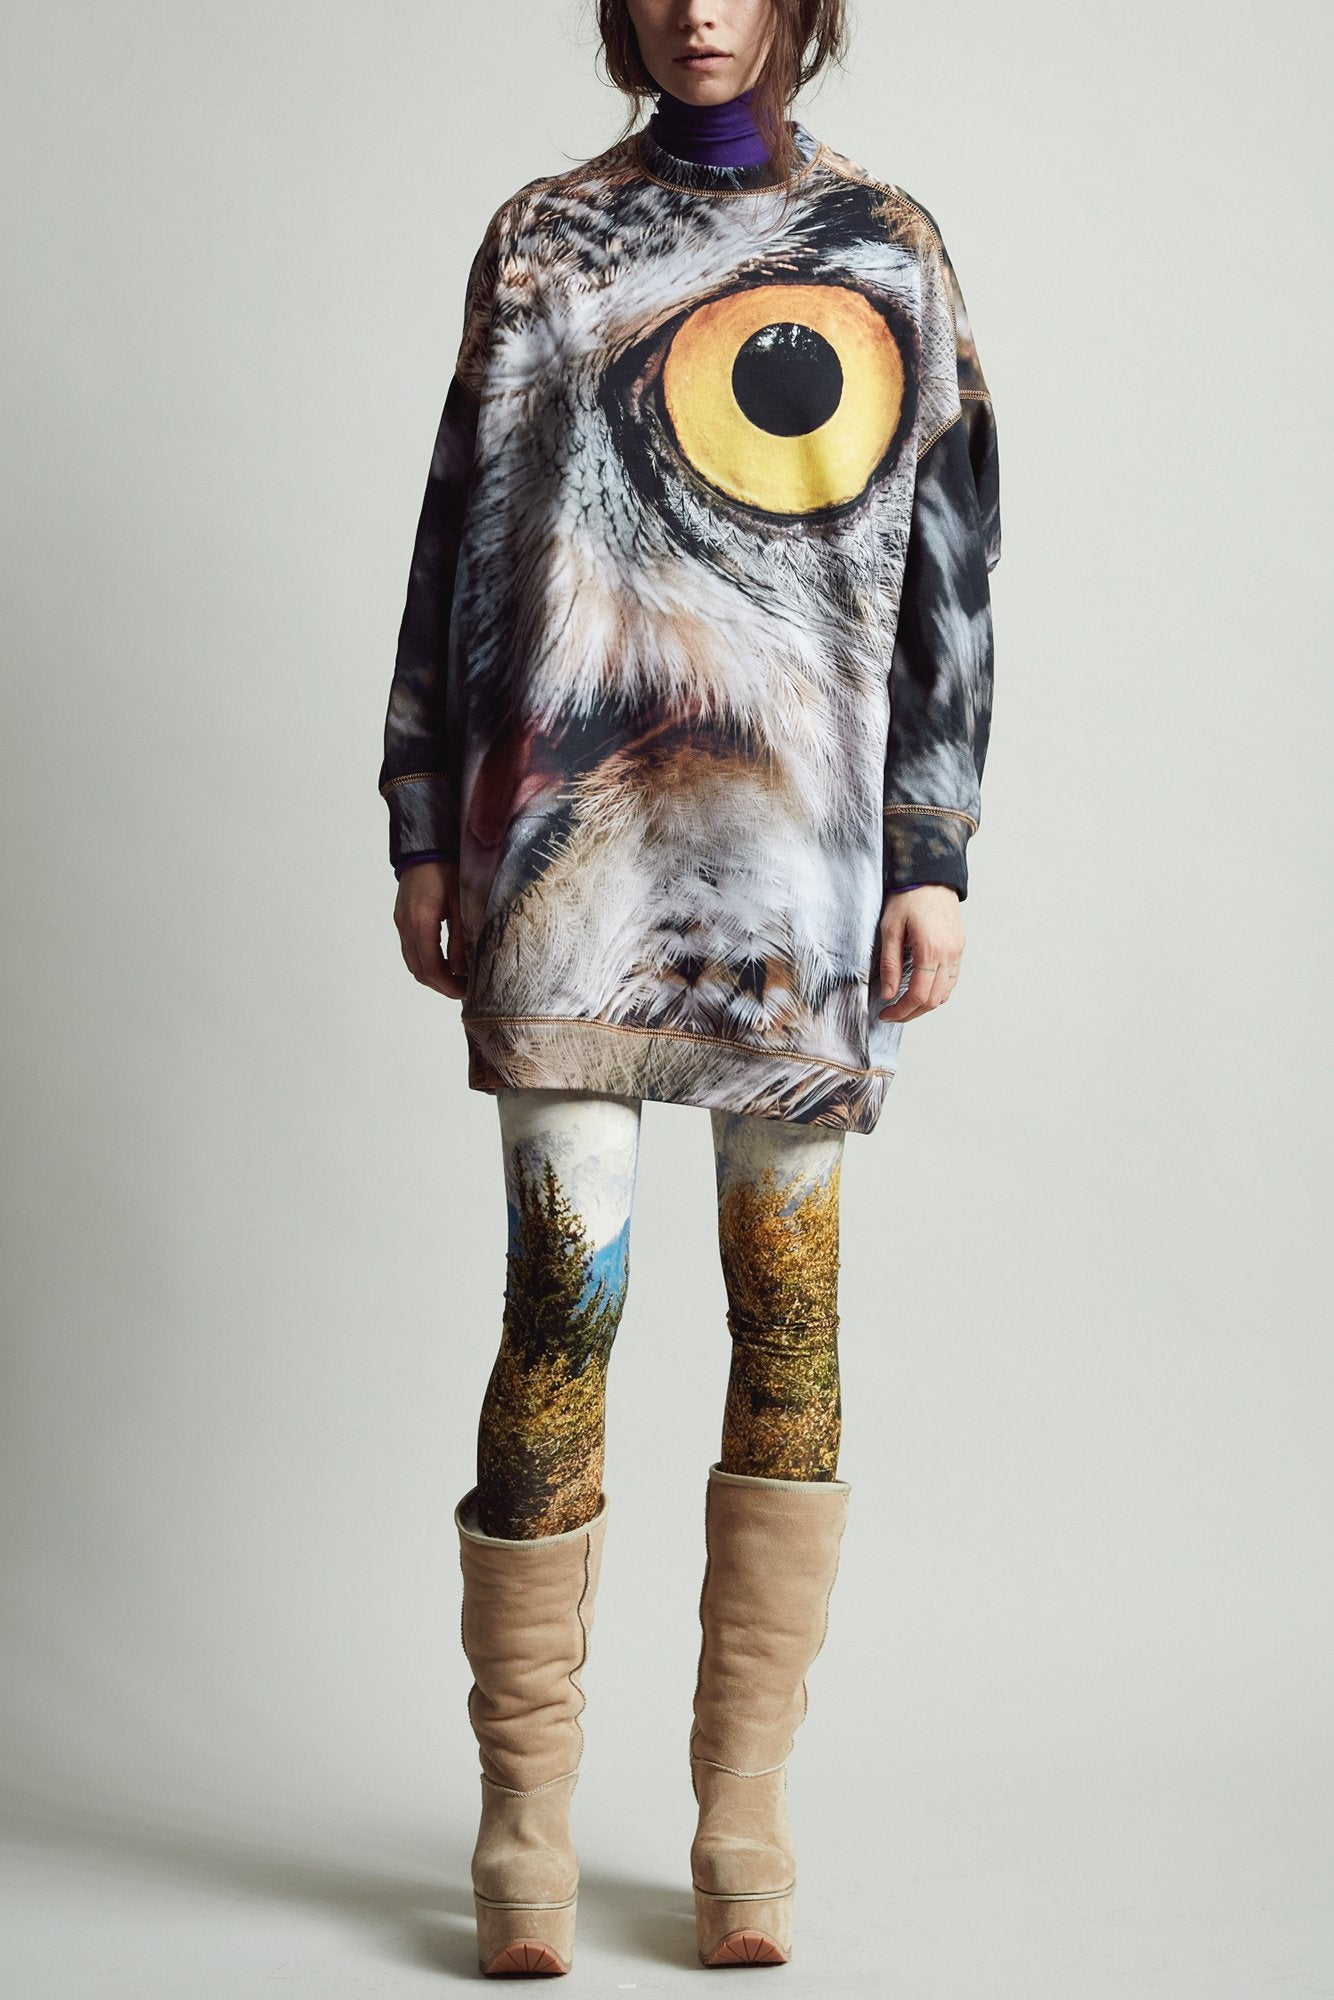 Owl Grunge Sweatshirt Dress